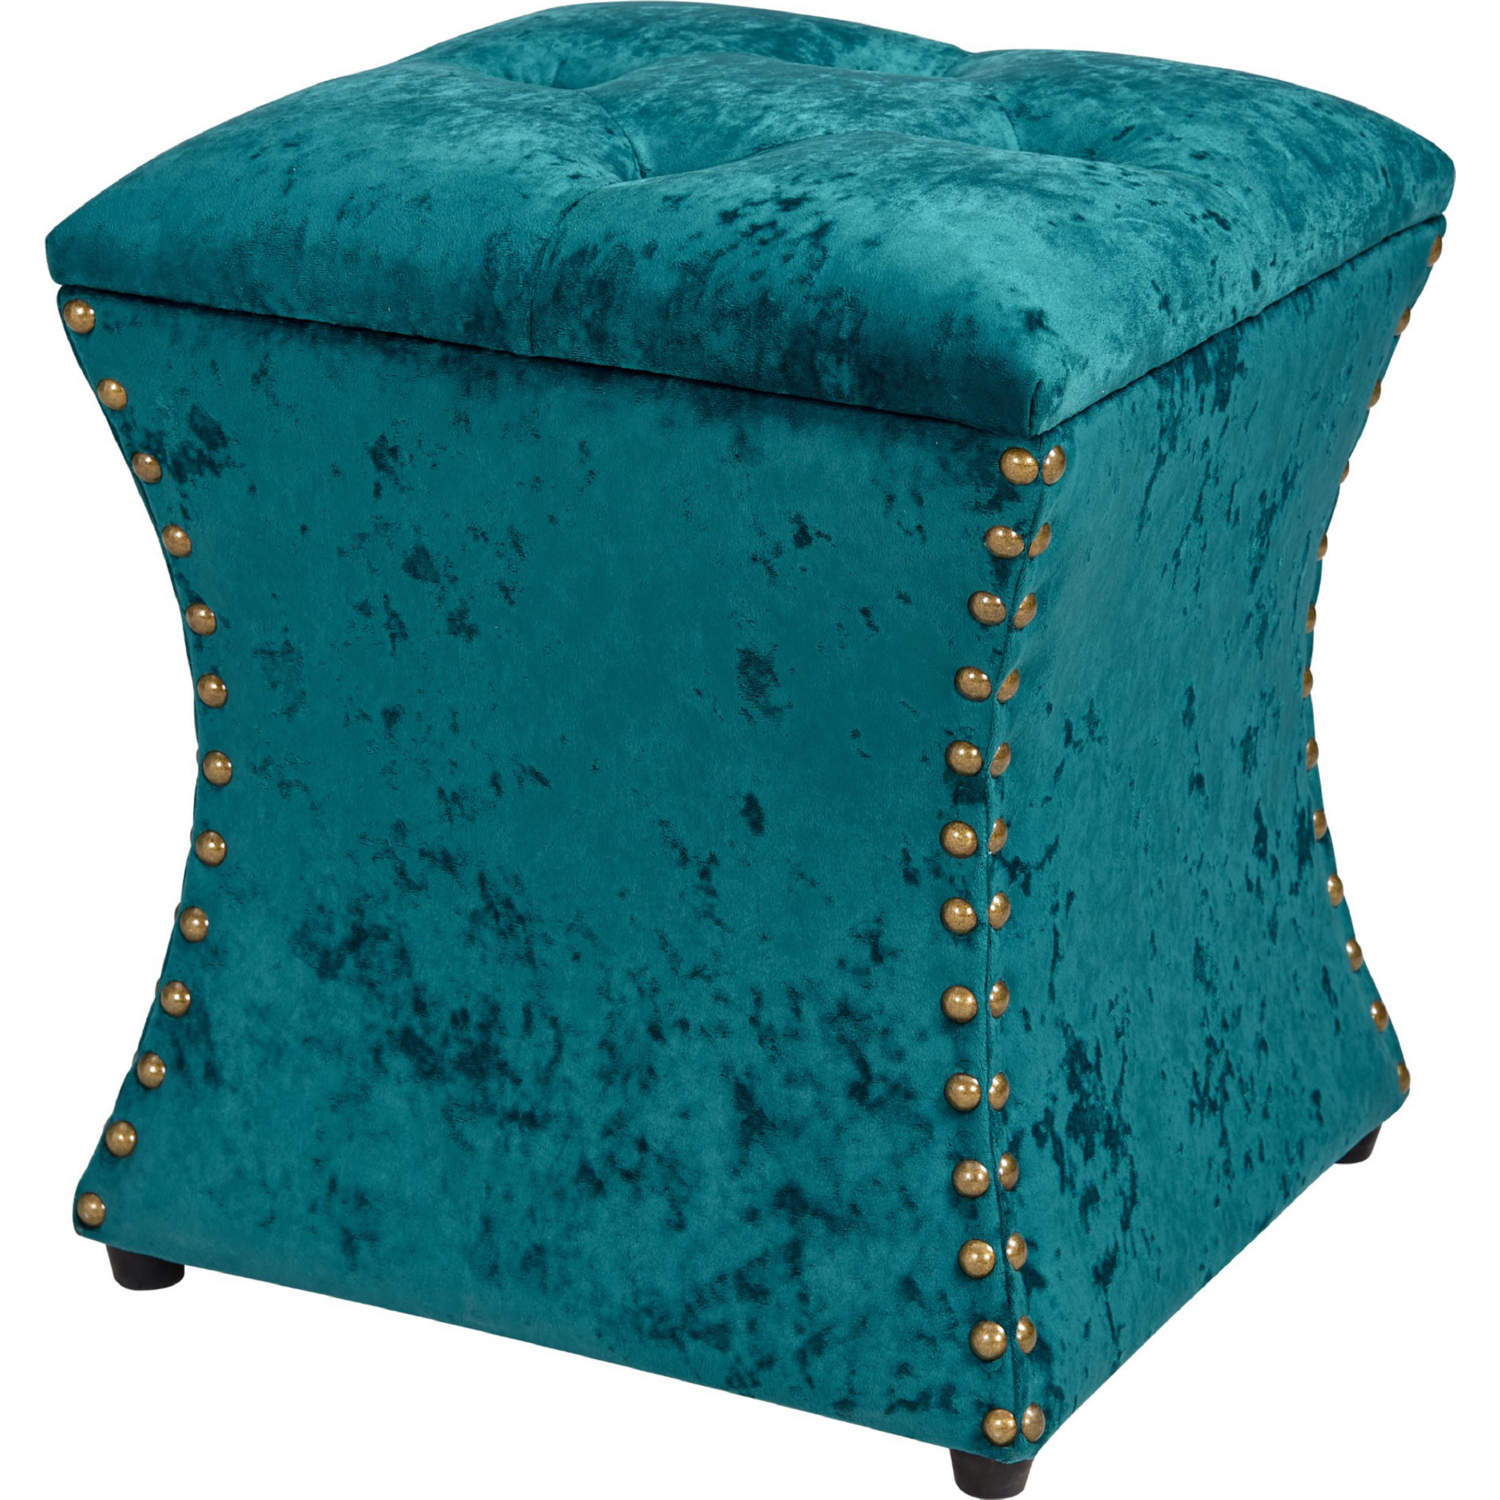 Astounding Amelia Storage Ottoman In Tufted Blue Velvet W Nailhead By New Pacific Direct Ocoug Best Dining Table And Chair Ideas Images Ocougorg